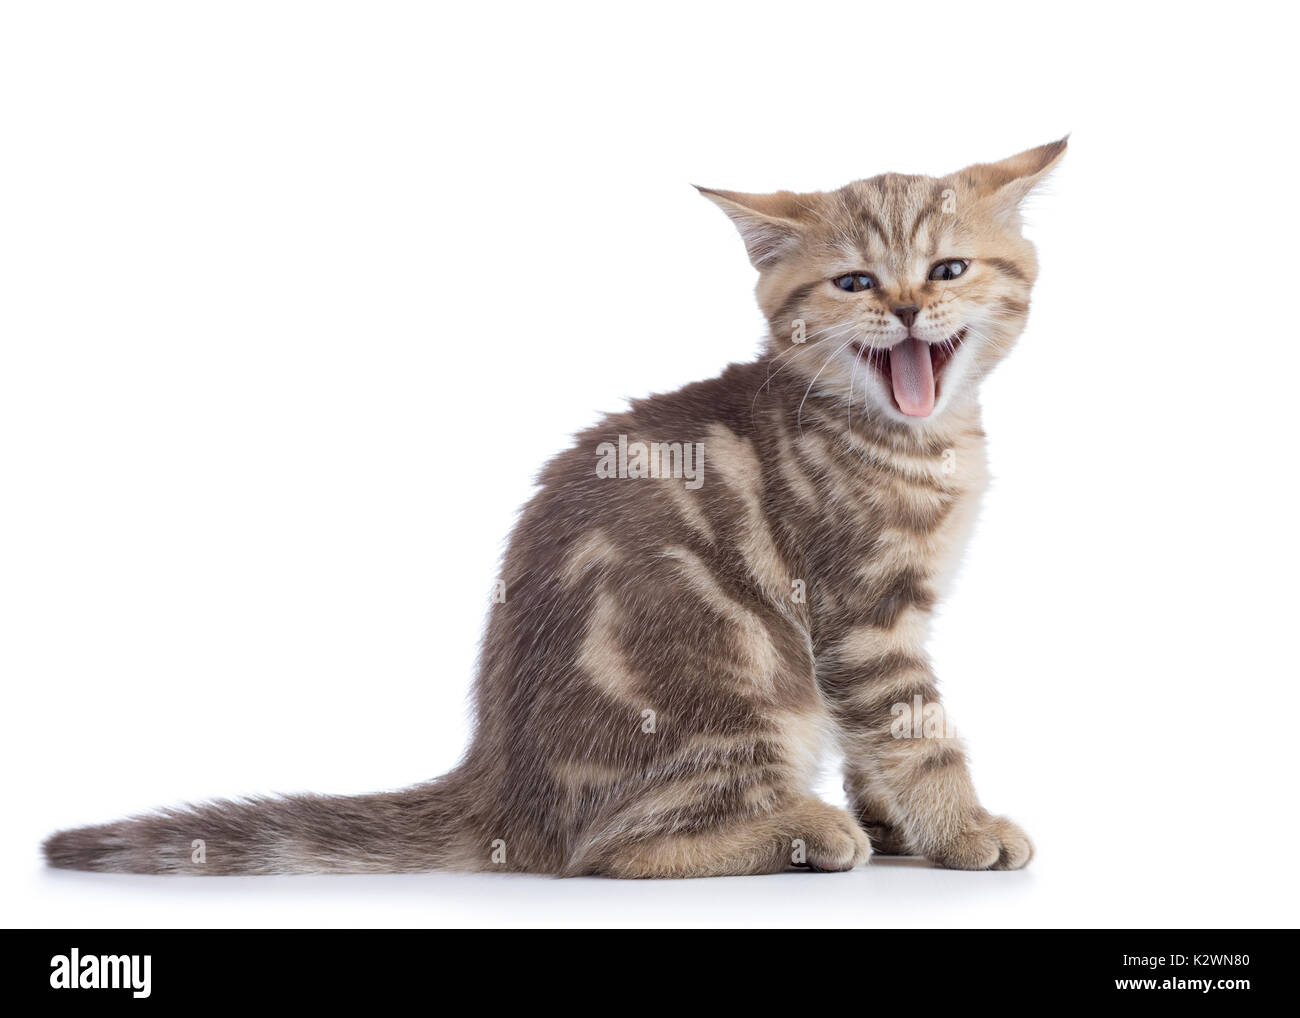 Small cat kitten with open mouth yawning. Studio shot. - Stock Image